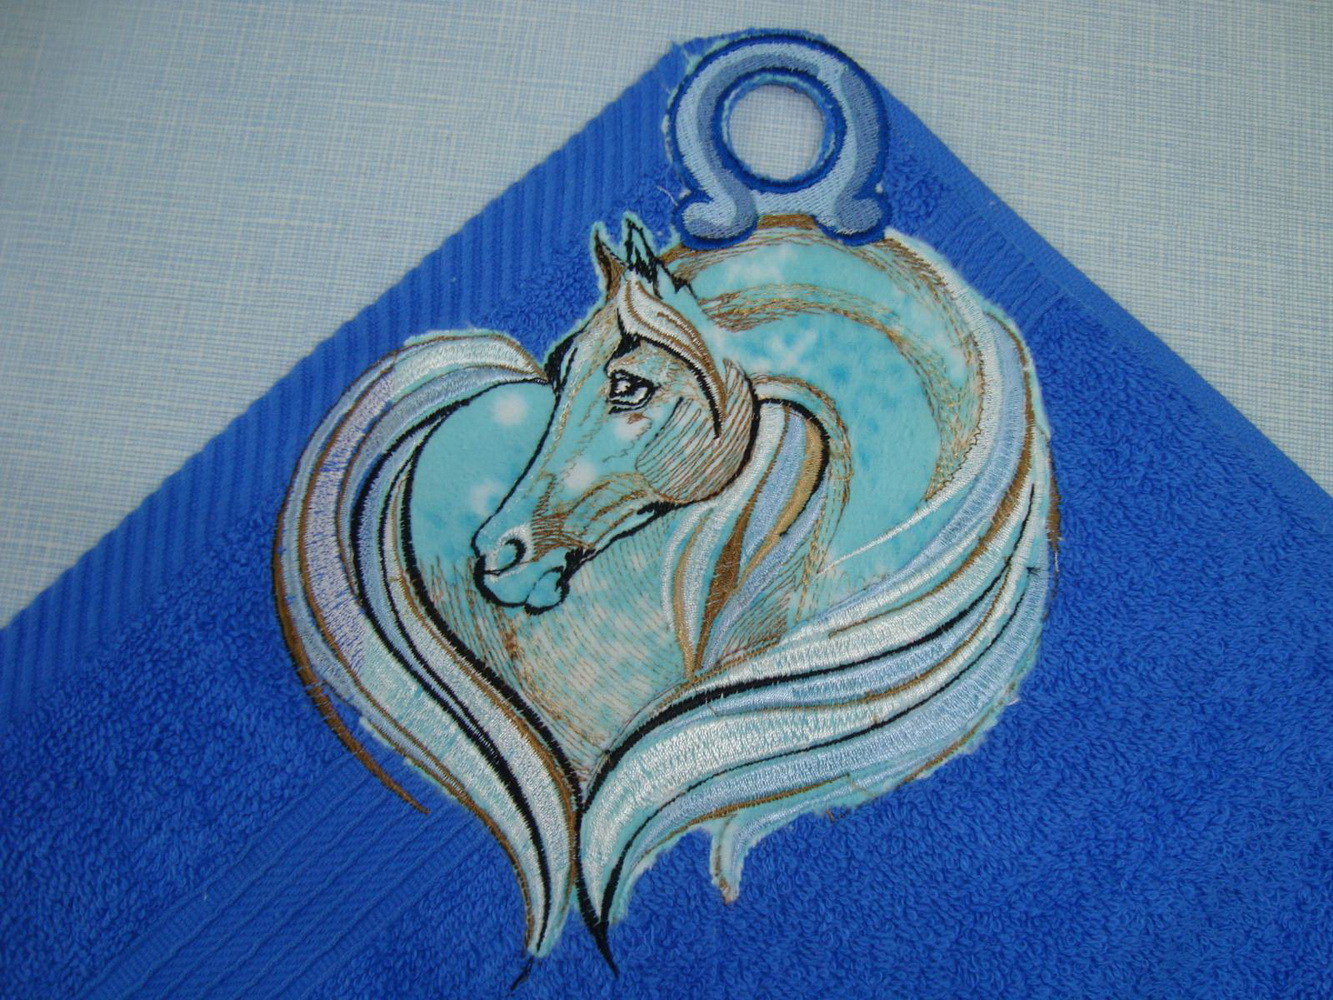 Horse design on towel embroidered